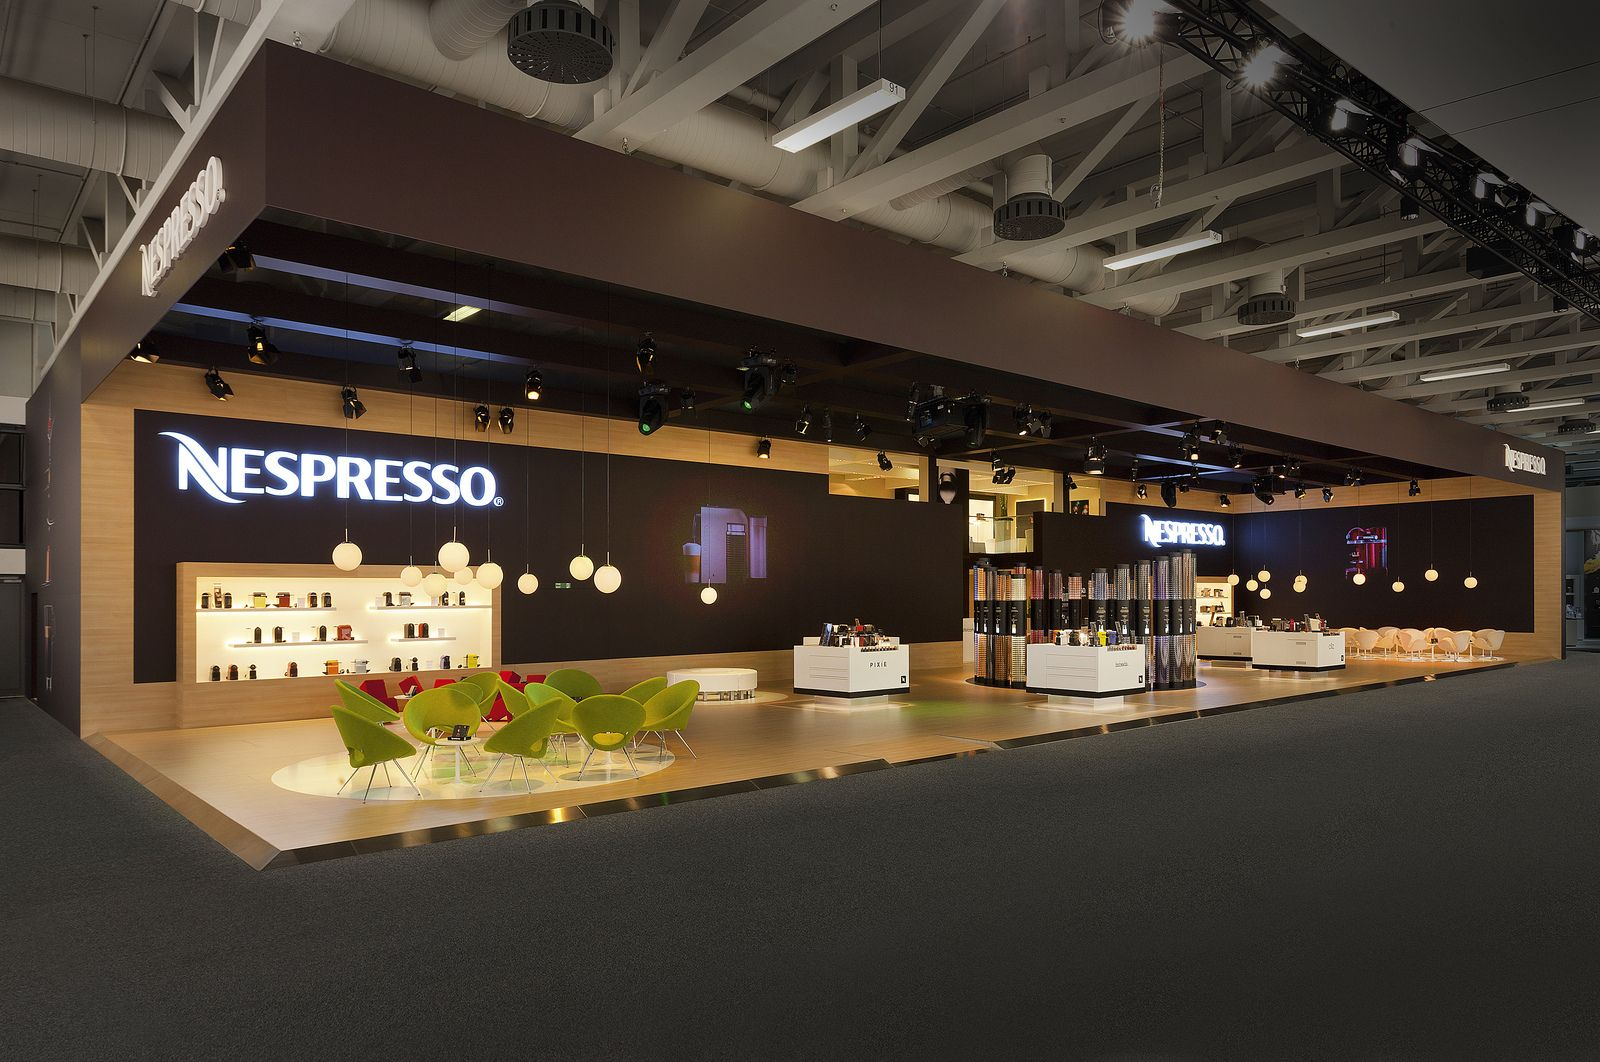 Salon Ifa Nespresso Ifa 2014 Berlin Exhibit Ideas Pinterest